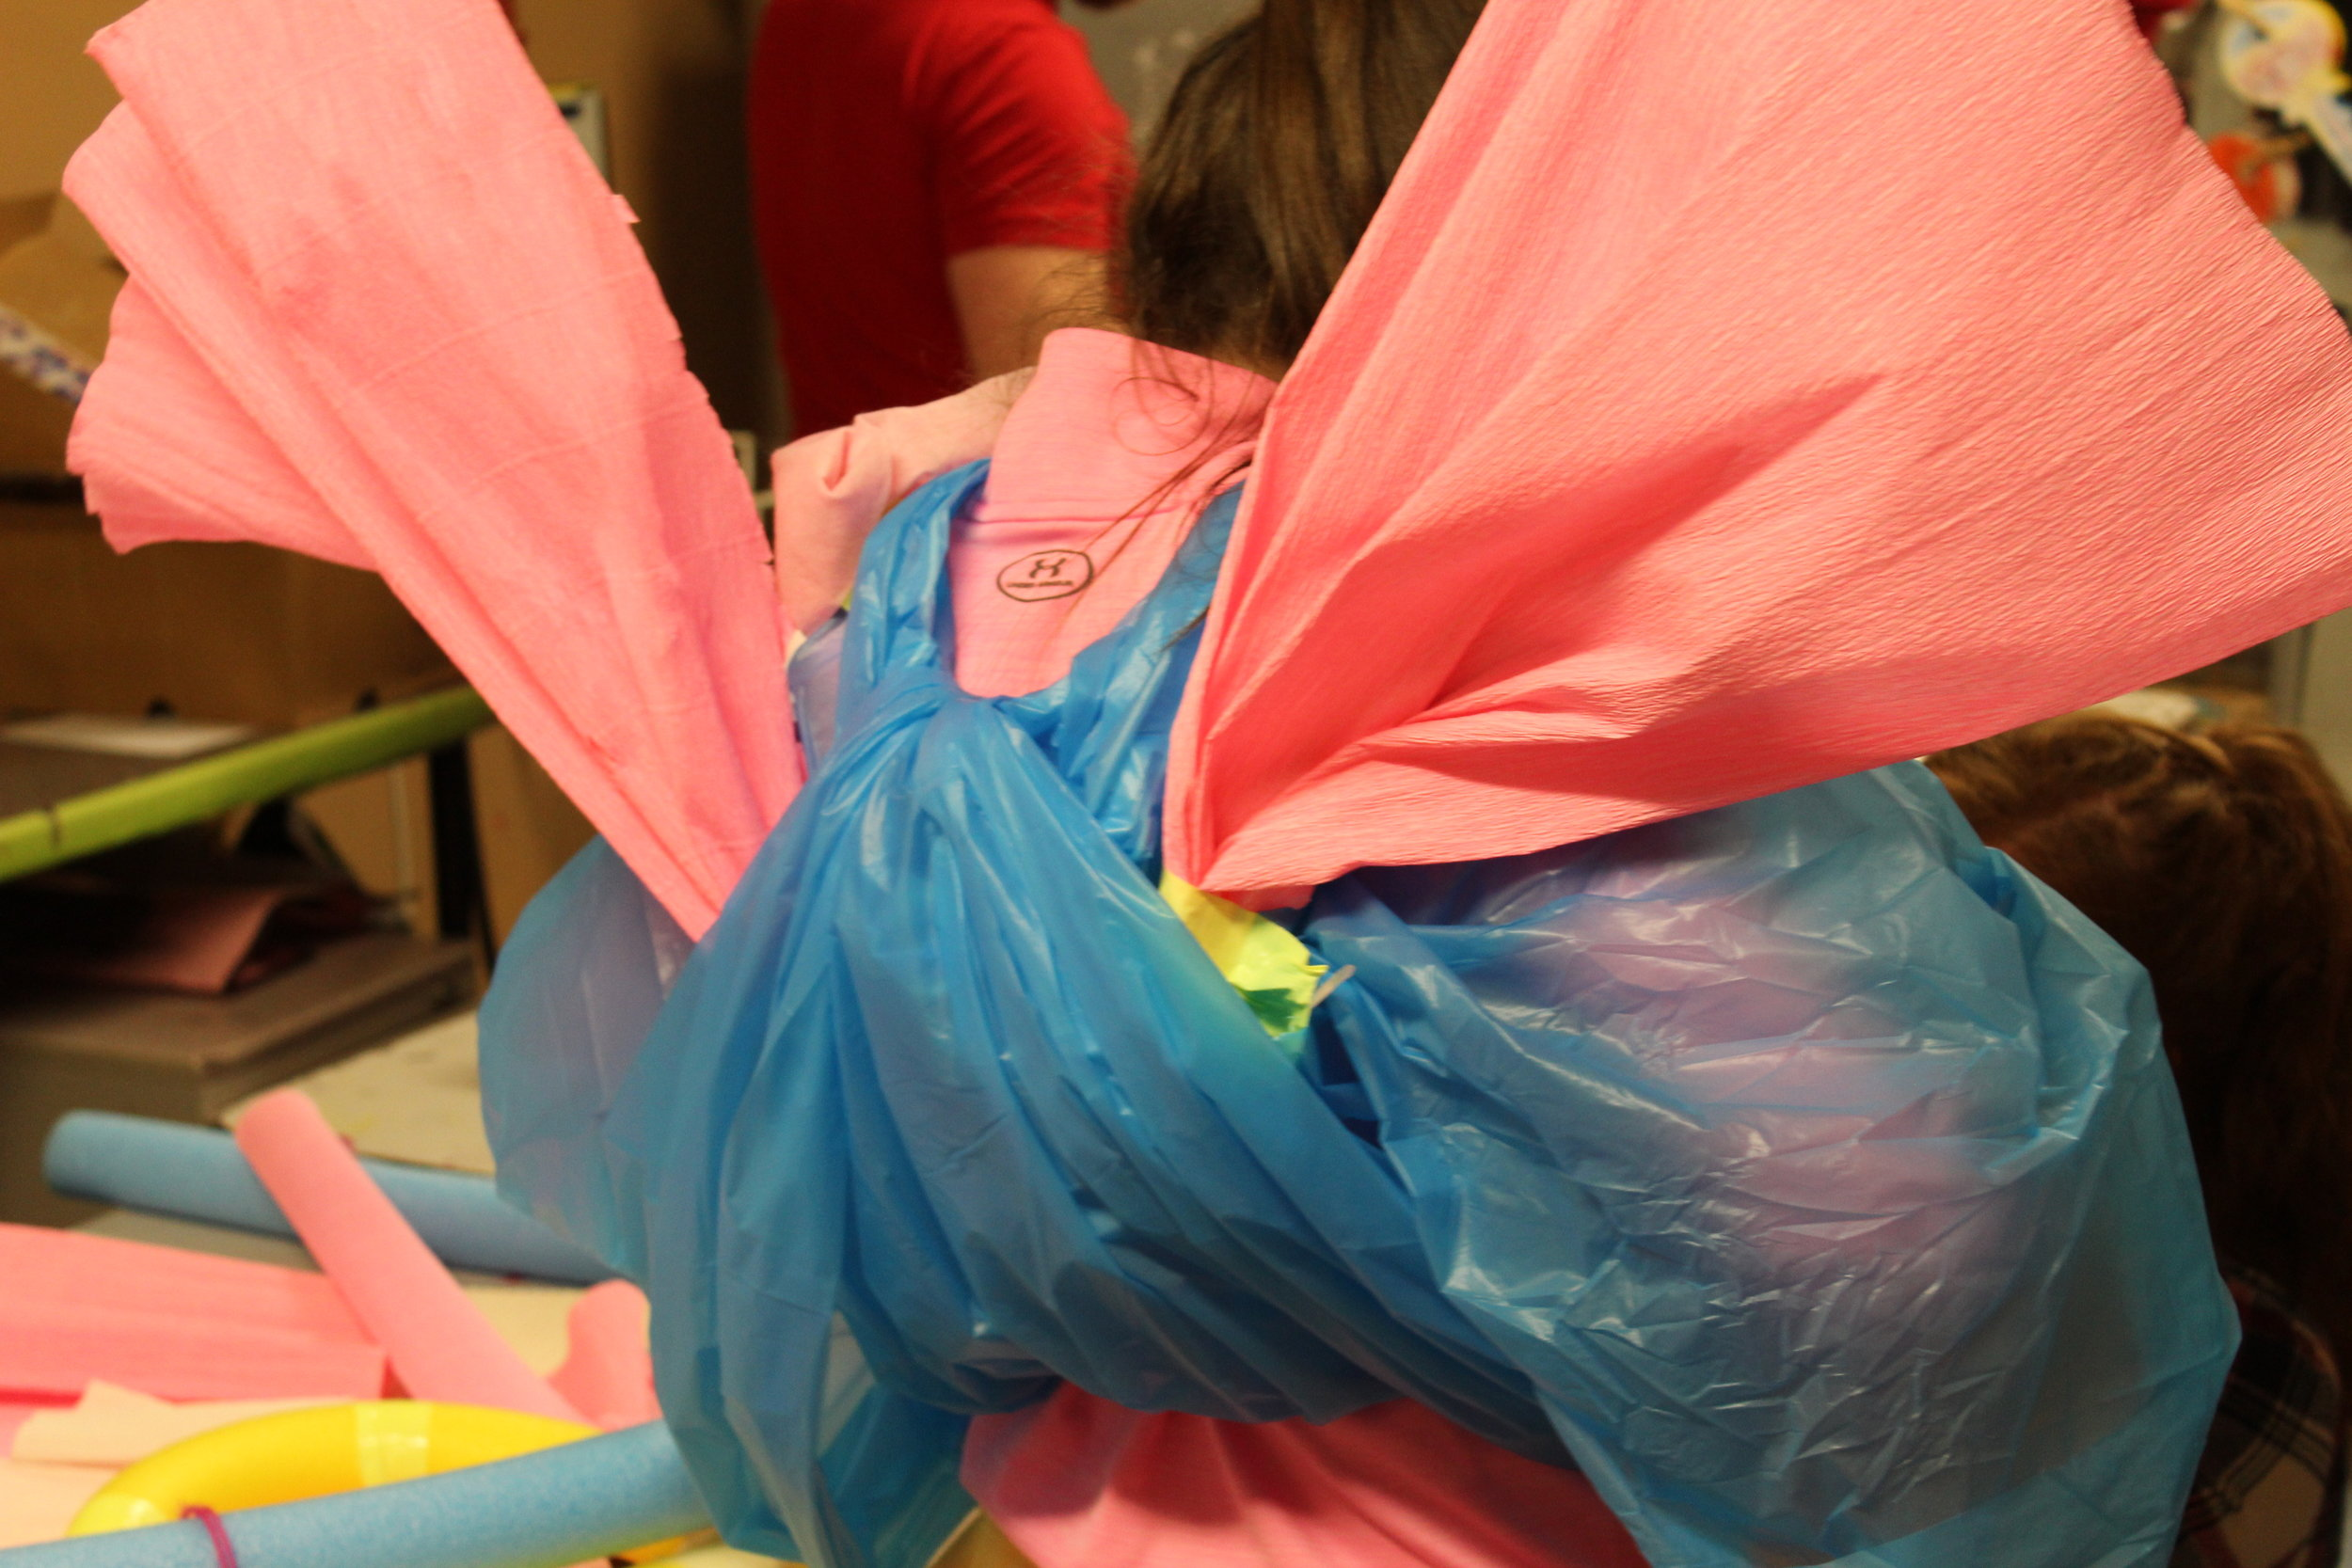 Wings were featured in some costumes - insect-like qualities emerged